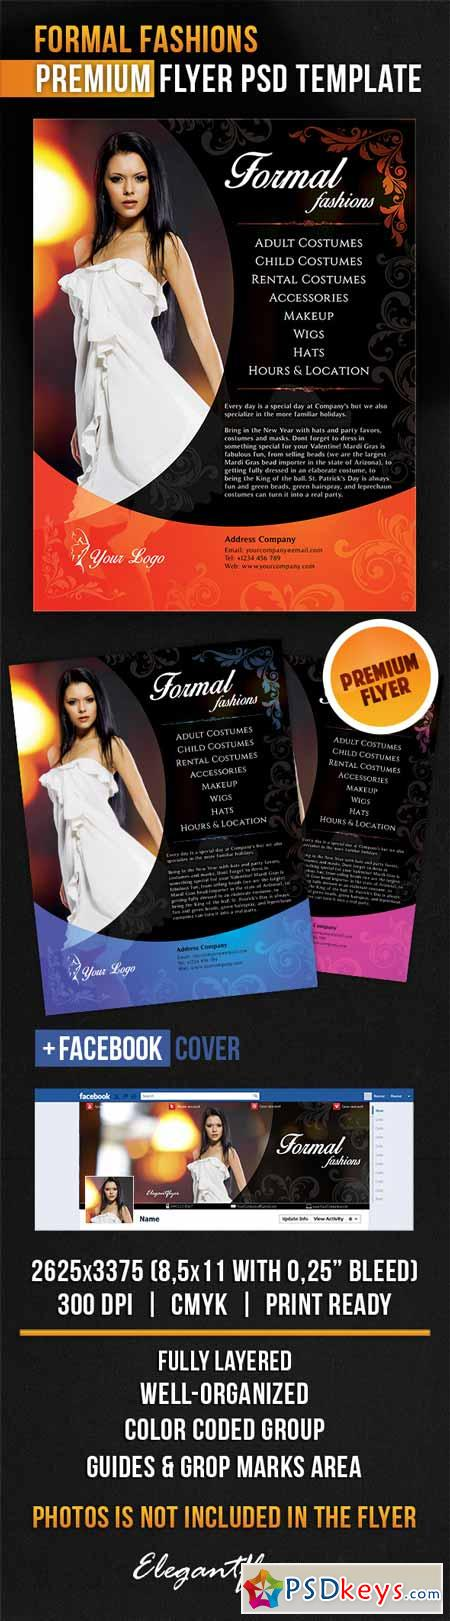 Formal Fashions – Flyer PSD Template + Facebook Cover